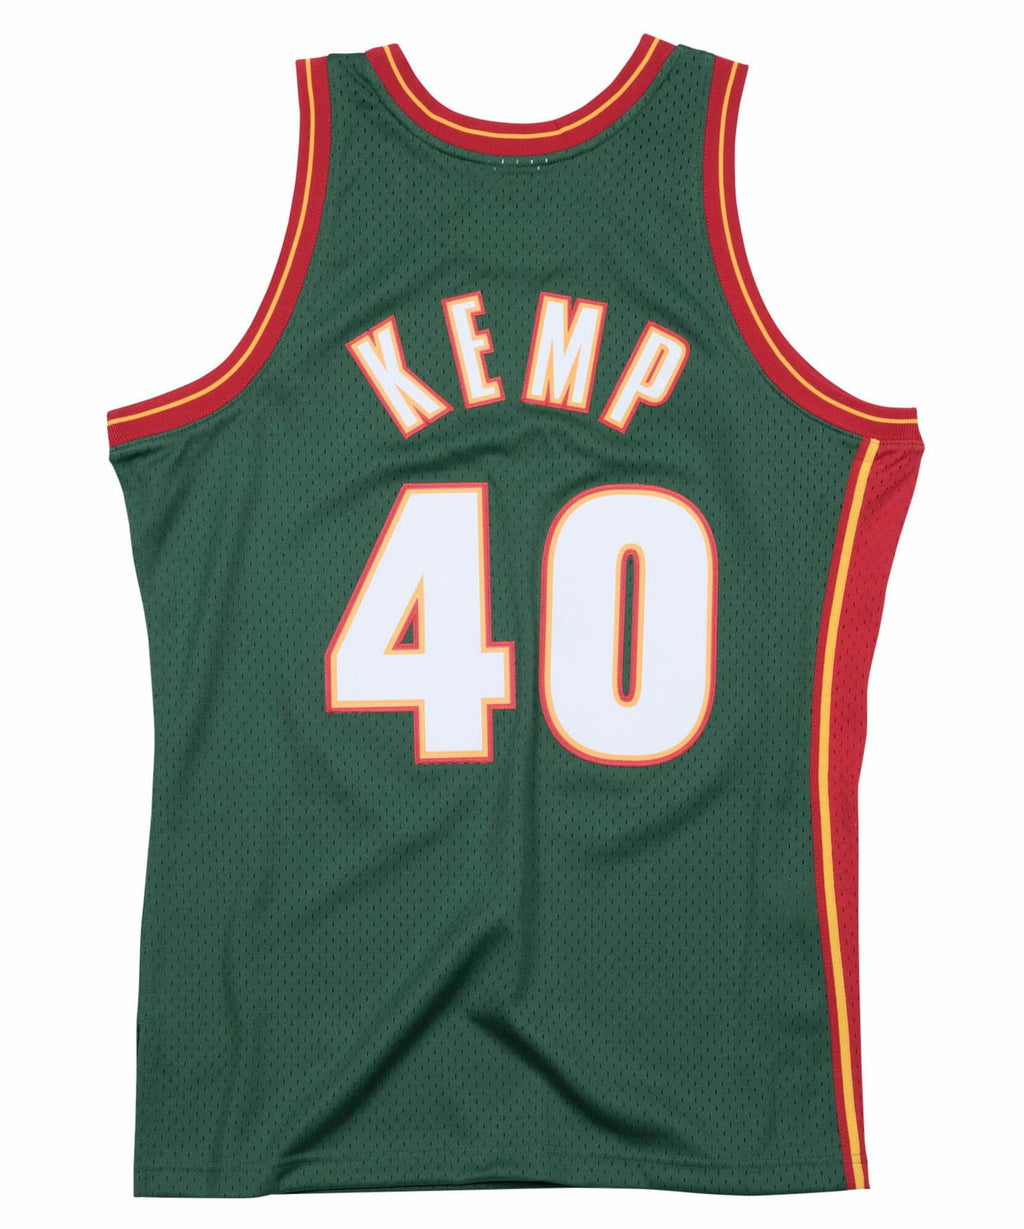 Shawn Kemp Seattle SuperSonics 1995-1996 Road Swinman Jersey